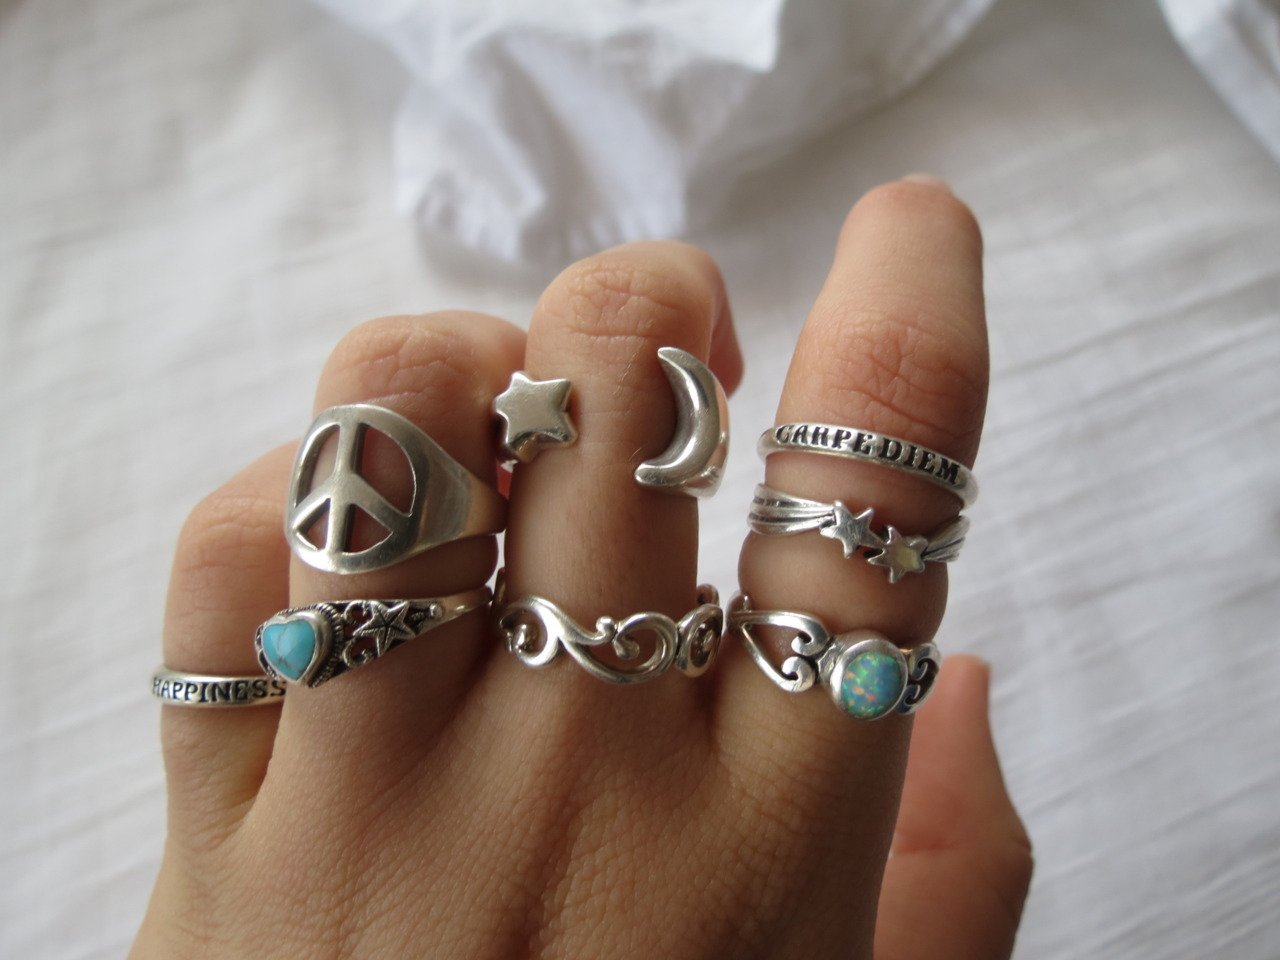 bohemian-life:  the-coconut-shredder:  peach-sunset:  all my fave rings :)   omg these are the nicest rings ive ever seen  omg. woow. they all look so nice! i want themmm. don't make me jealous, girl :)